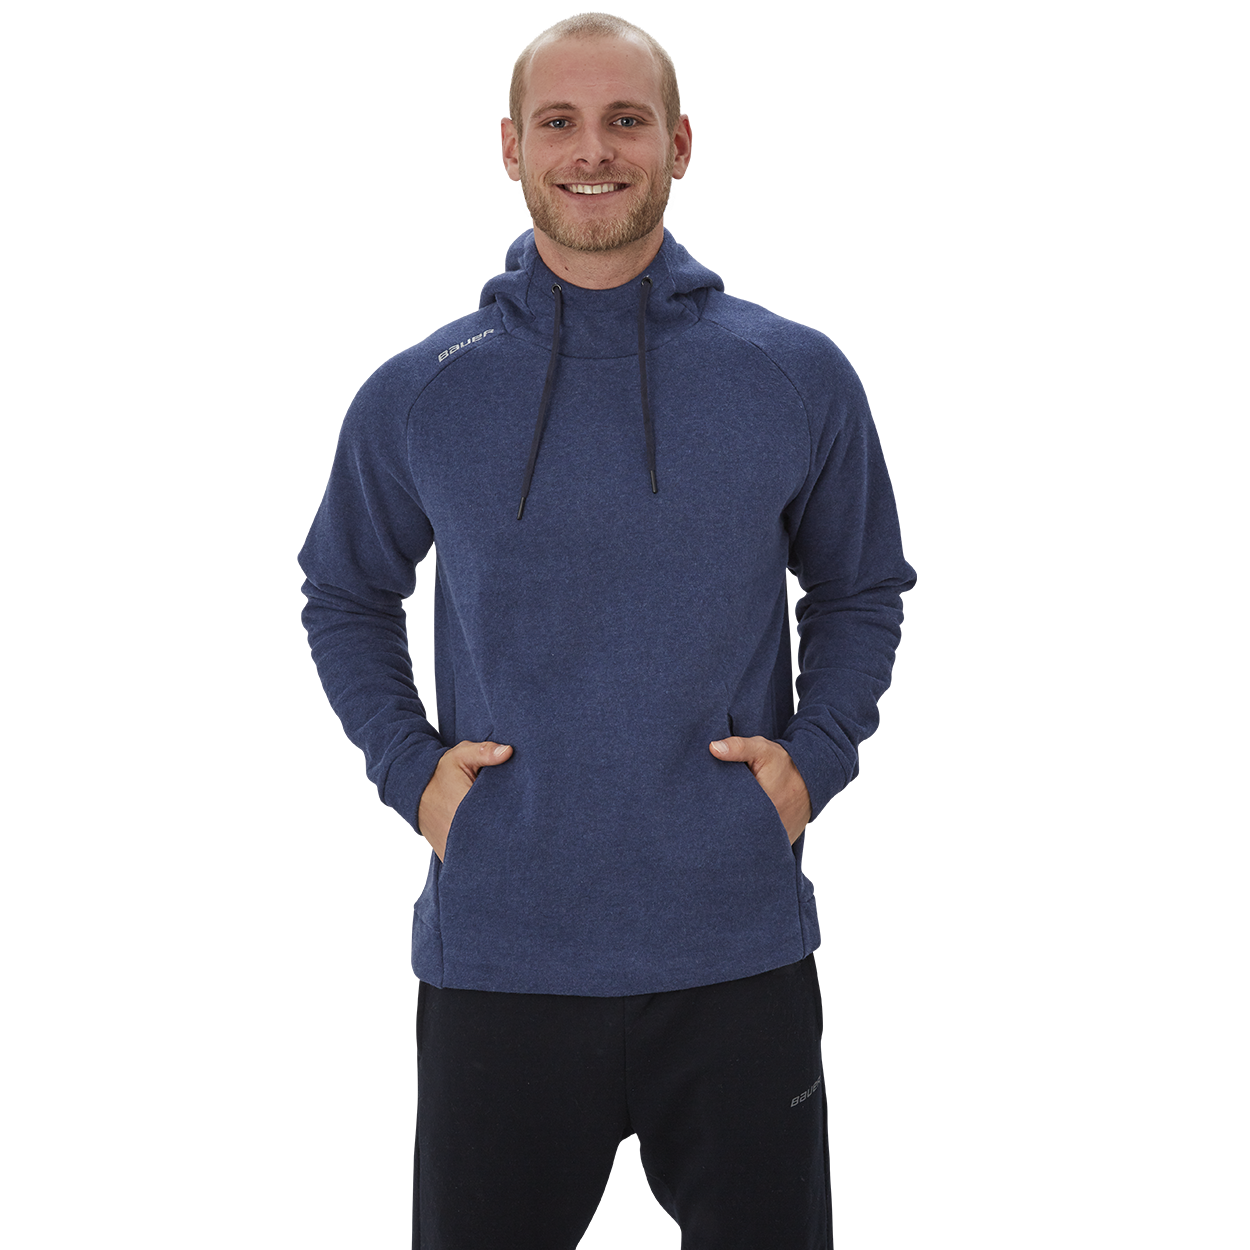 Bauer Perfect Hoodie,Marineblau,Medium